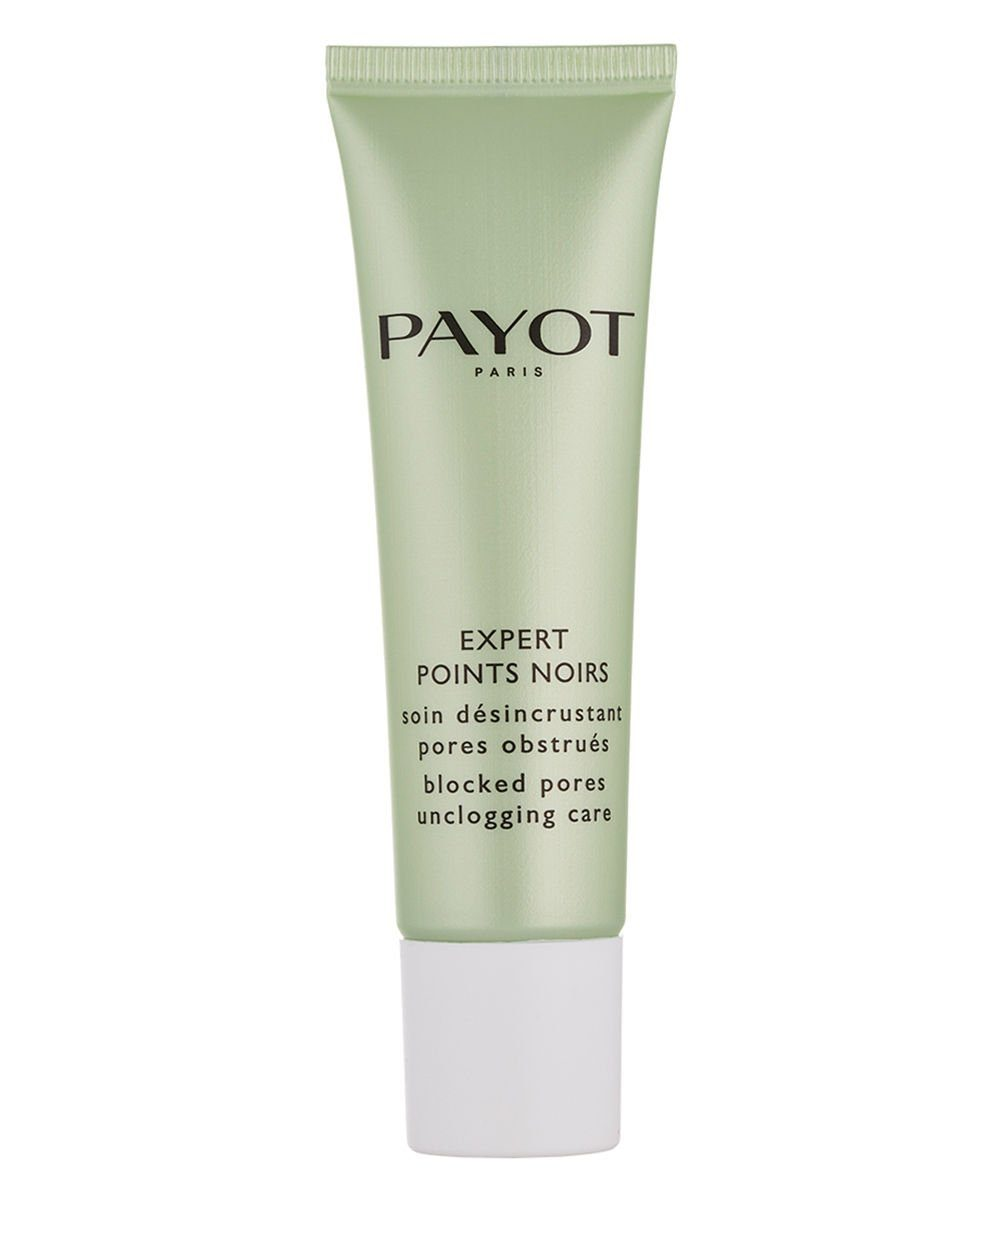 Payot Gesichtspflege »Expert Points Noirs Expert«